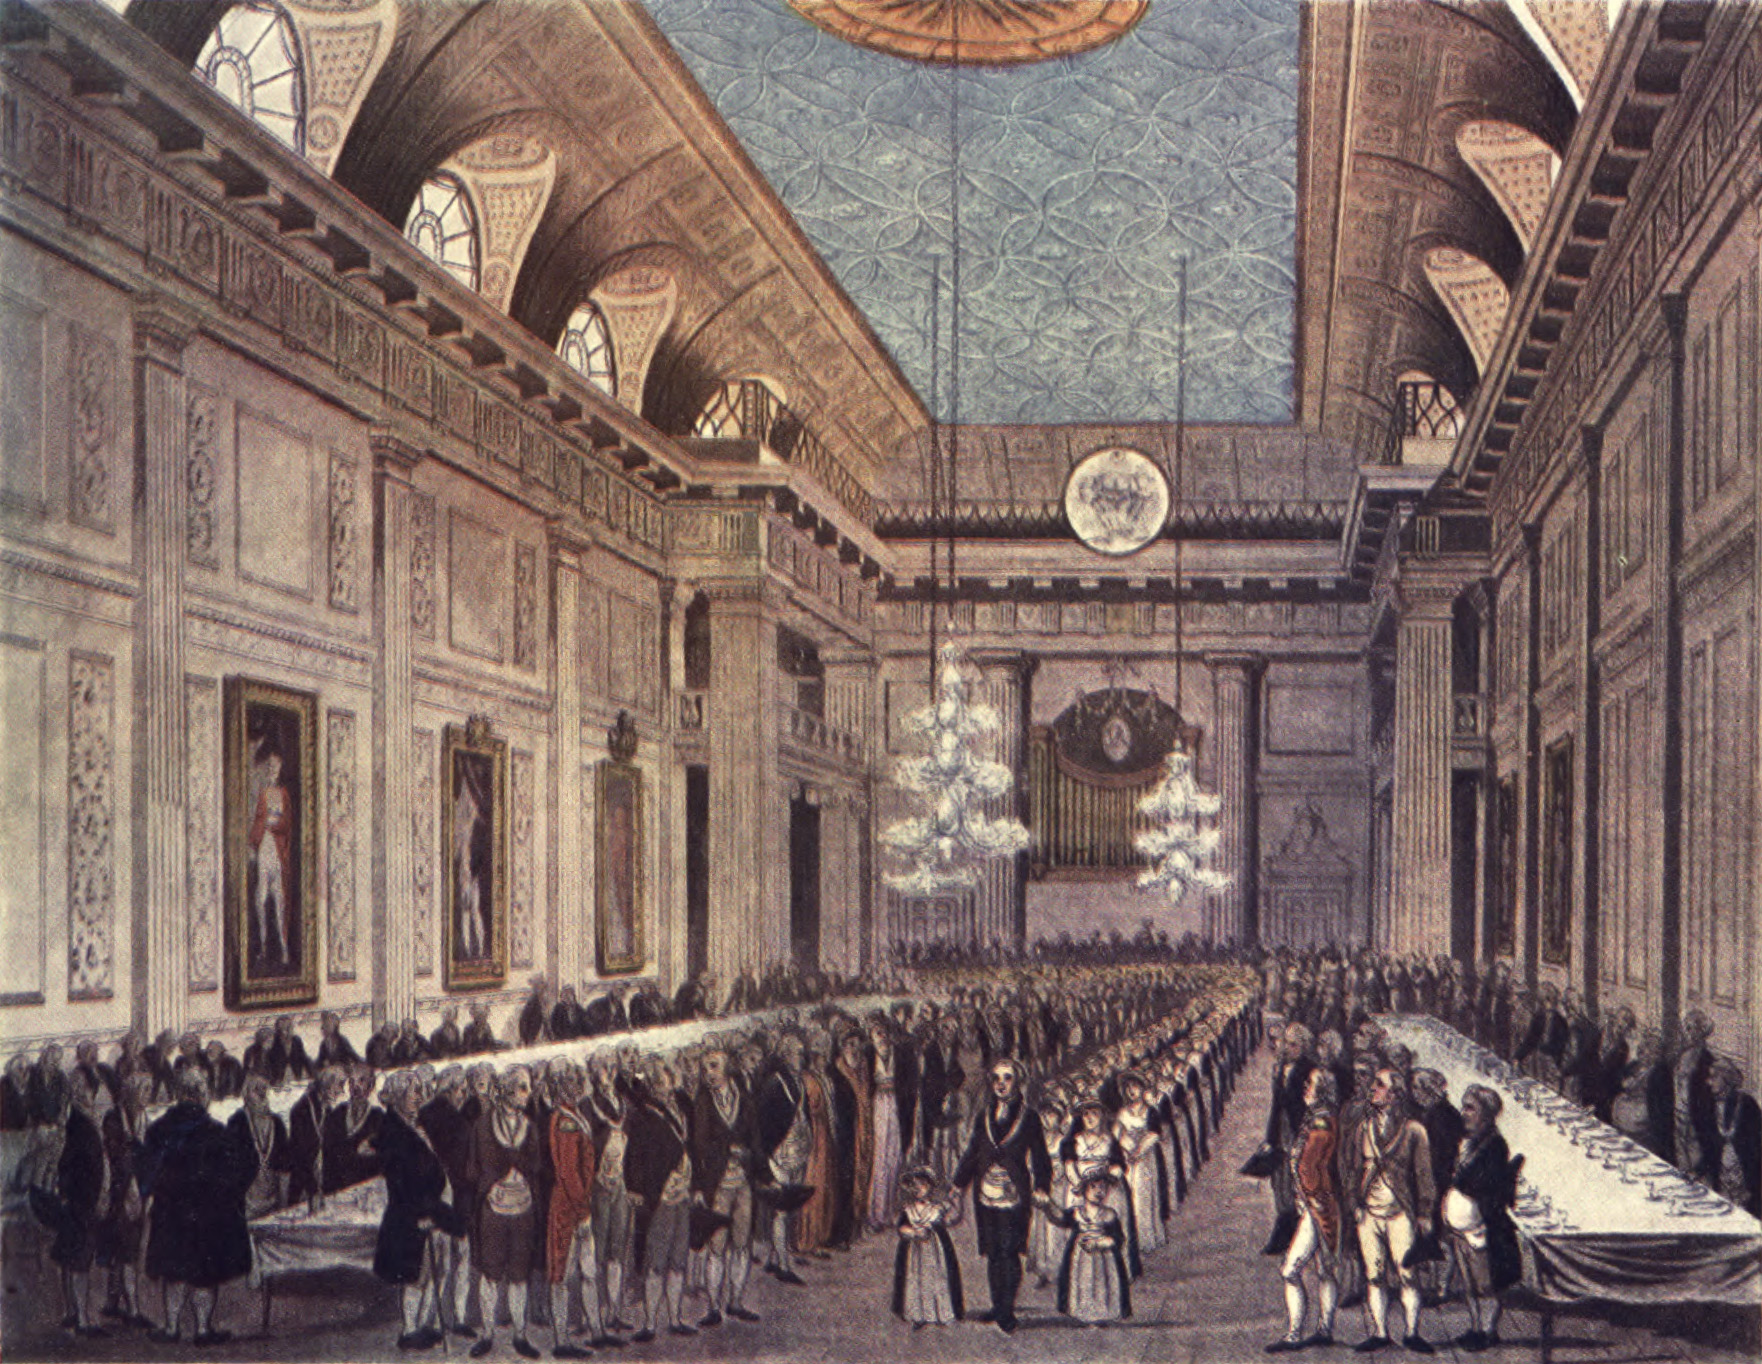 Microcosm_of_London_Plate_038_-_Freemasons'_Hall.jpg